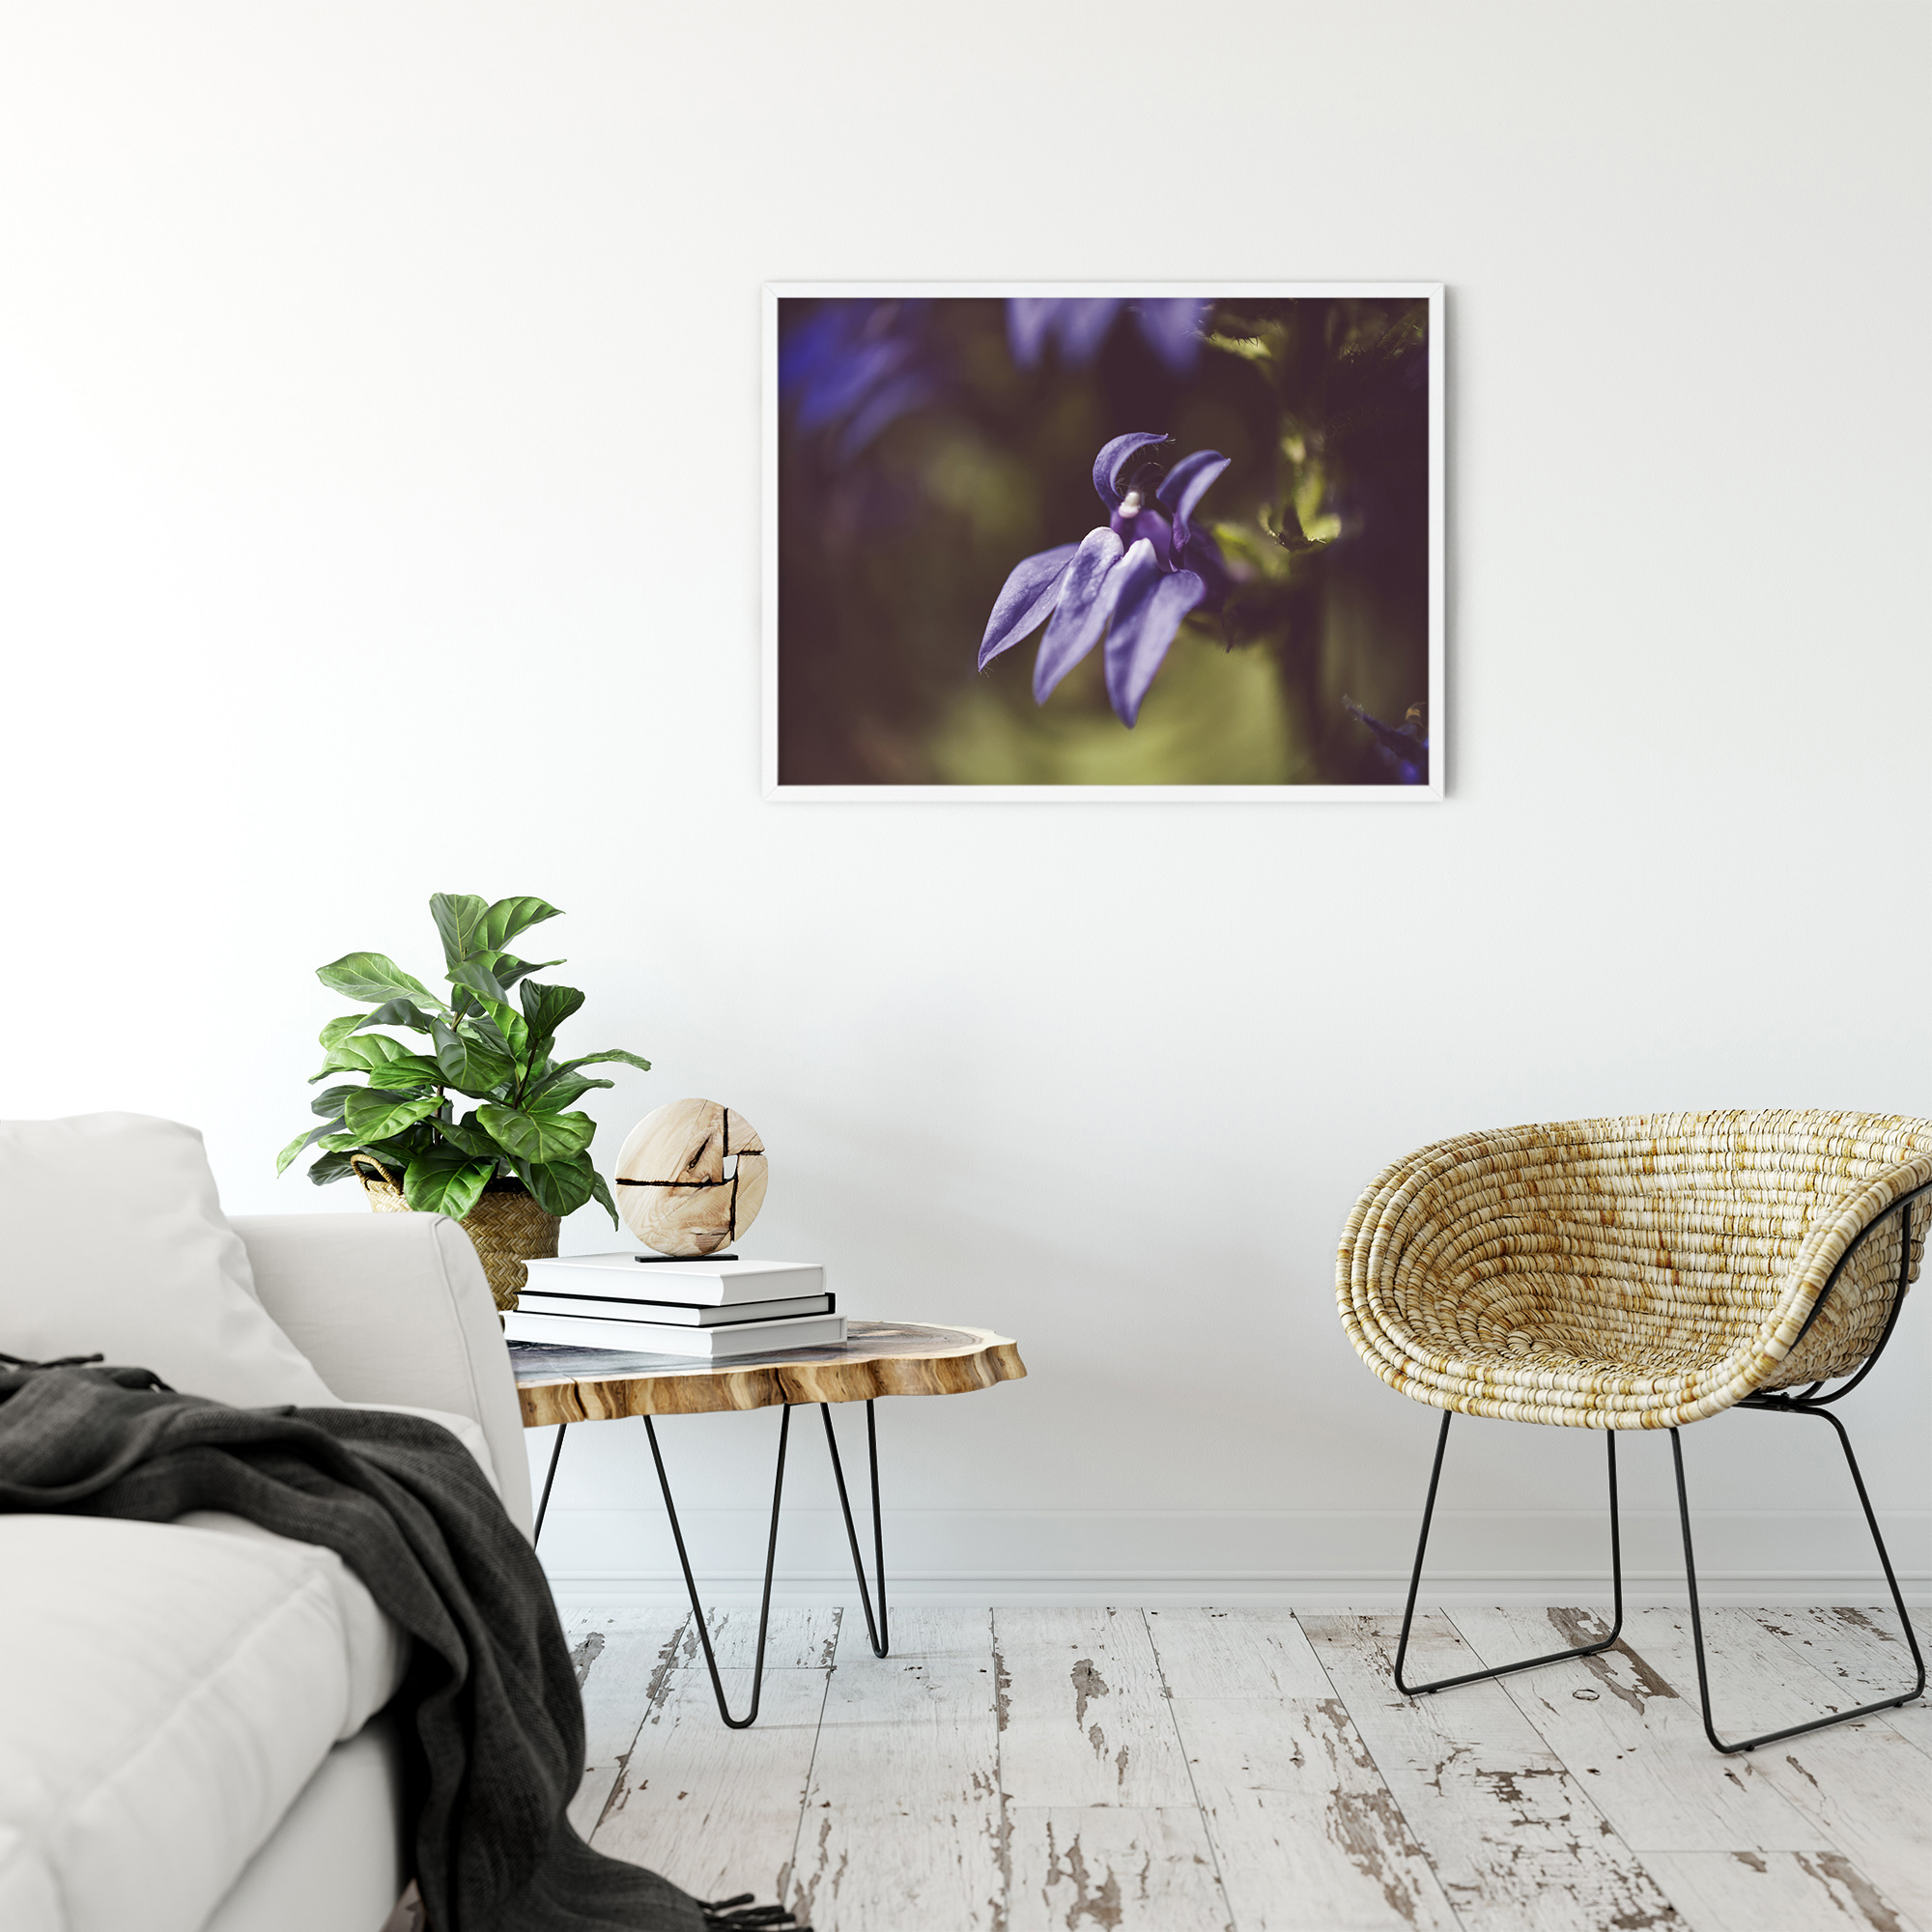 Dramatic Blue Lobelia, Blue Cardinal Flower Nature Photography Wall Art Prints Unframed and Fine Art Canvas Prints